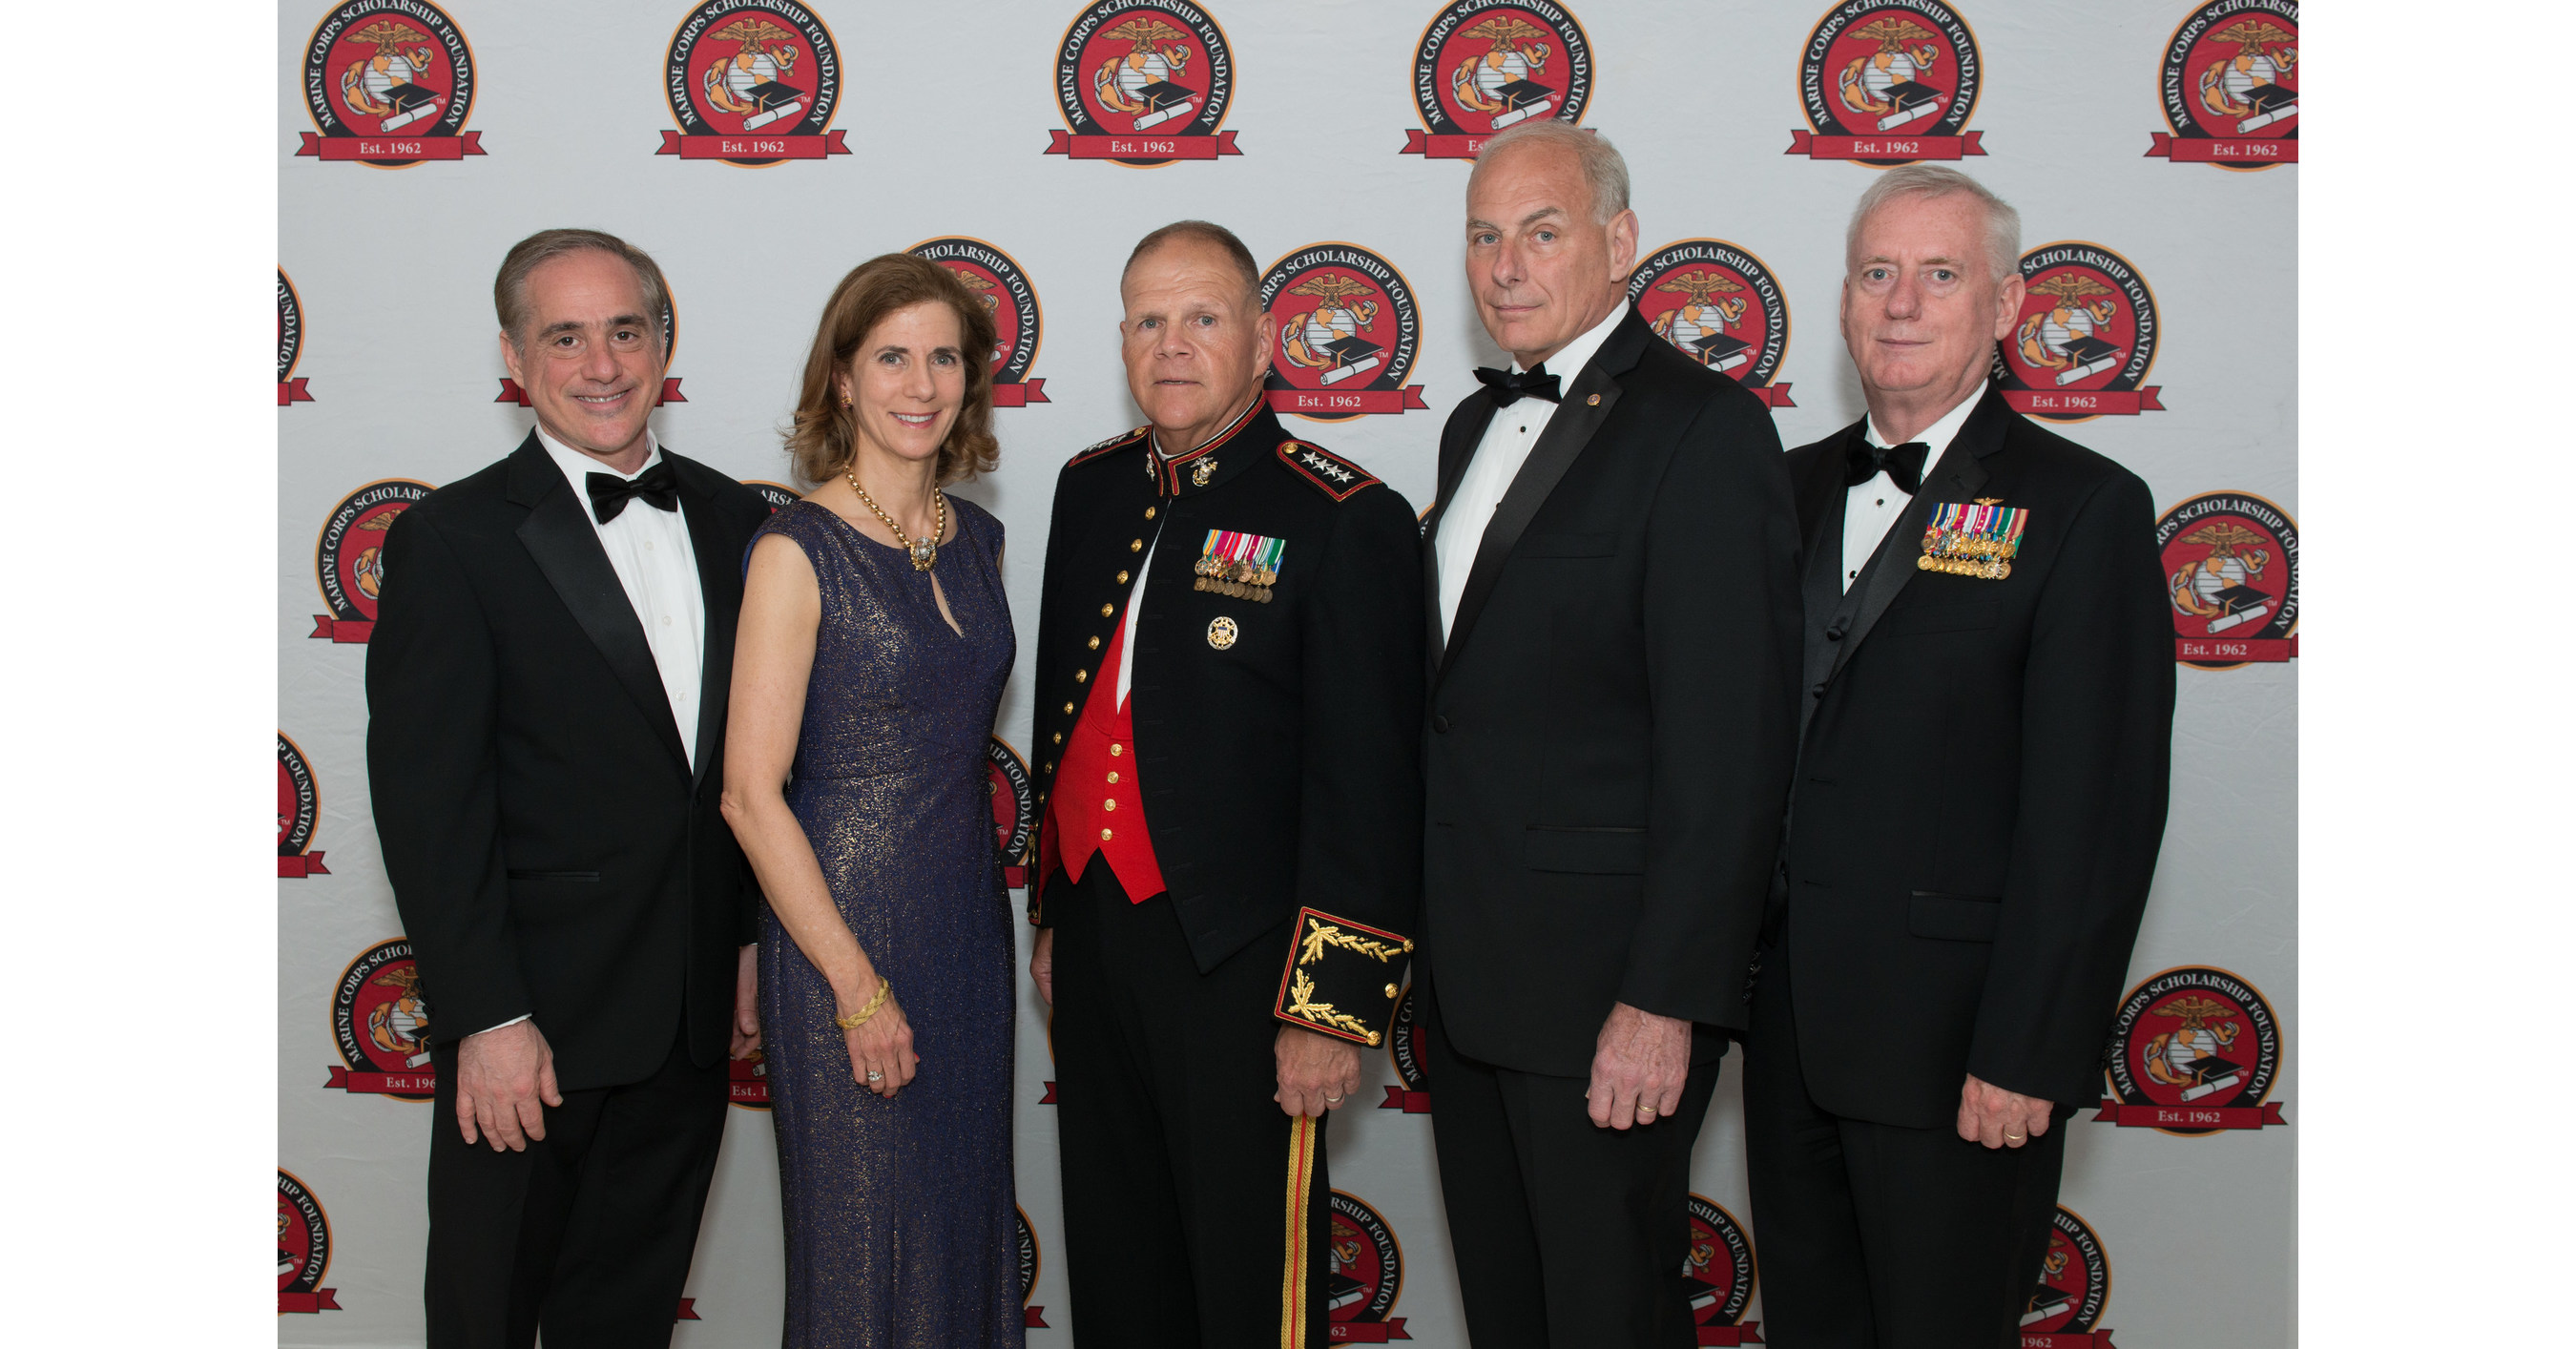 Marine Corps Scholarship Foundation 2017 A Record. Personnel Management Group Laptops With Ssds. Flight Travel Agencies Color Thermal Printers. Hotels Lancaster Gate London. Video Production Chicago 2014 Chevy Tahoe Mpg. Phd In Economics Online Article On Basketball. Install Wordpress On Bluehost. Salt Lake County Property Search. Direct Tv Internet Deals Online Forex Trading